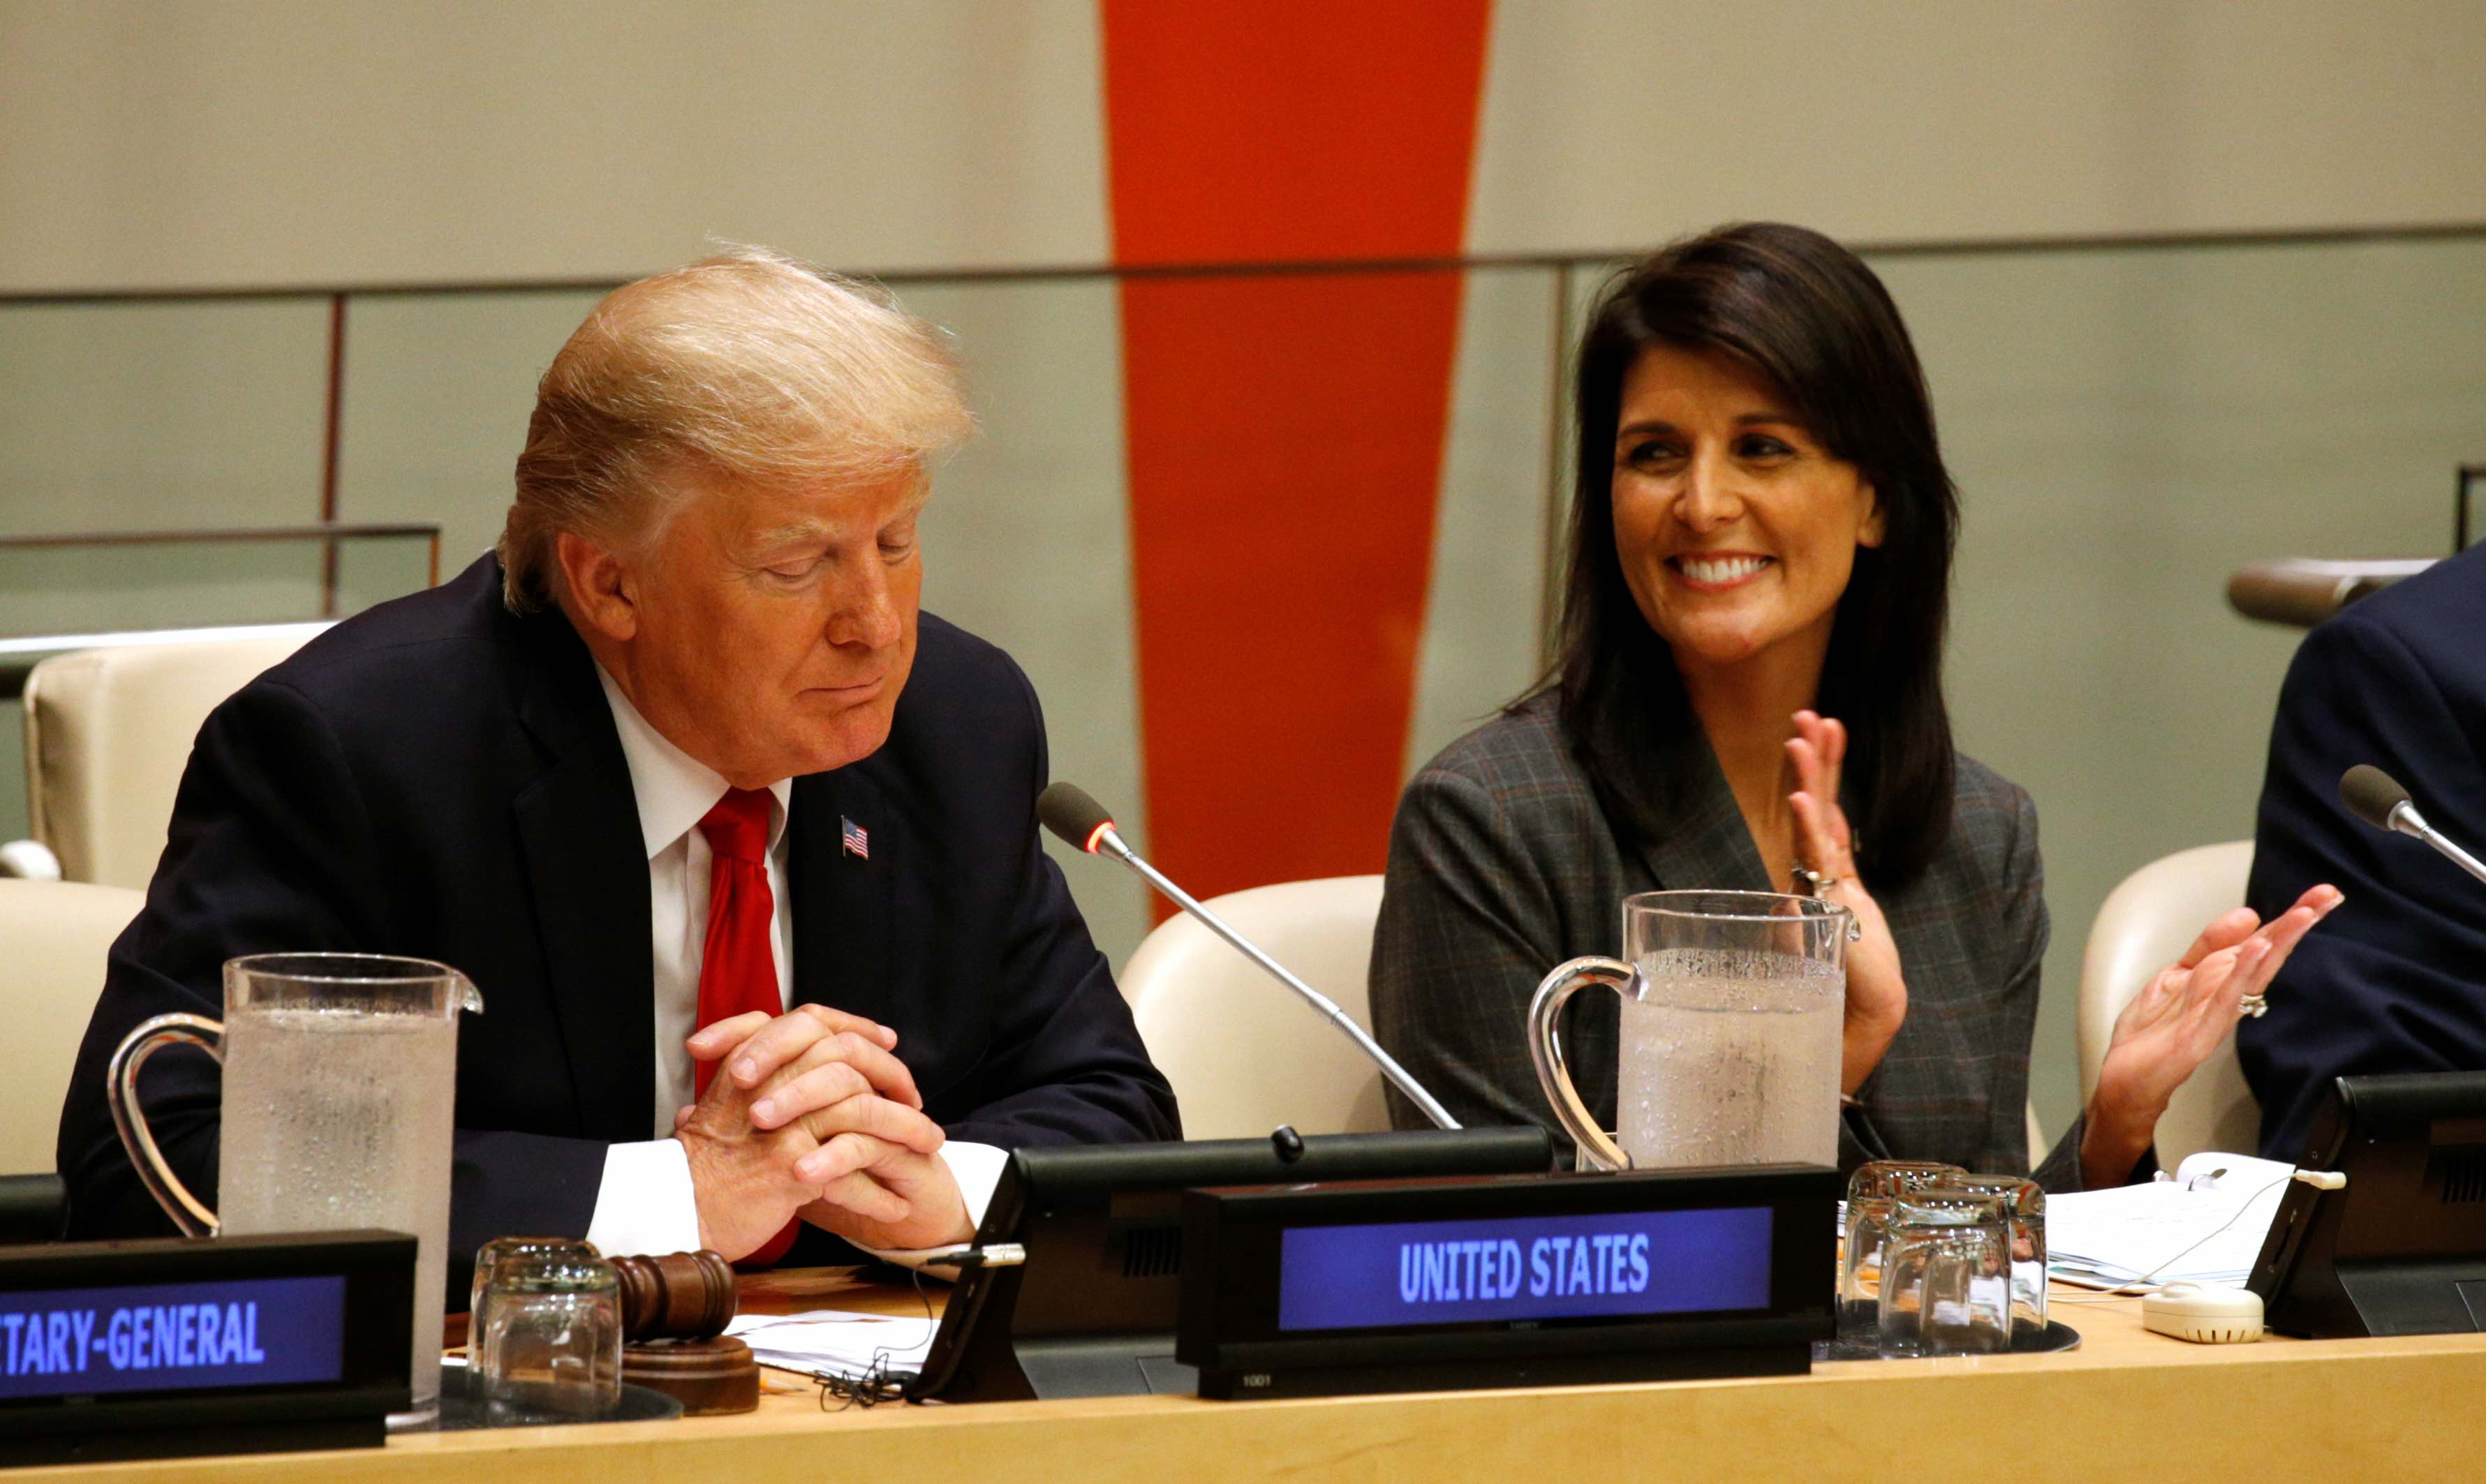 US Ambassador the the UN Nikki Haley applauds as US President Donald Trump speaks during a session on reforming the United Nations at UN Headquarters in New York, September 18, 2017. Credit: Reuters/Kevin Lamarque